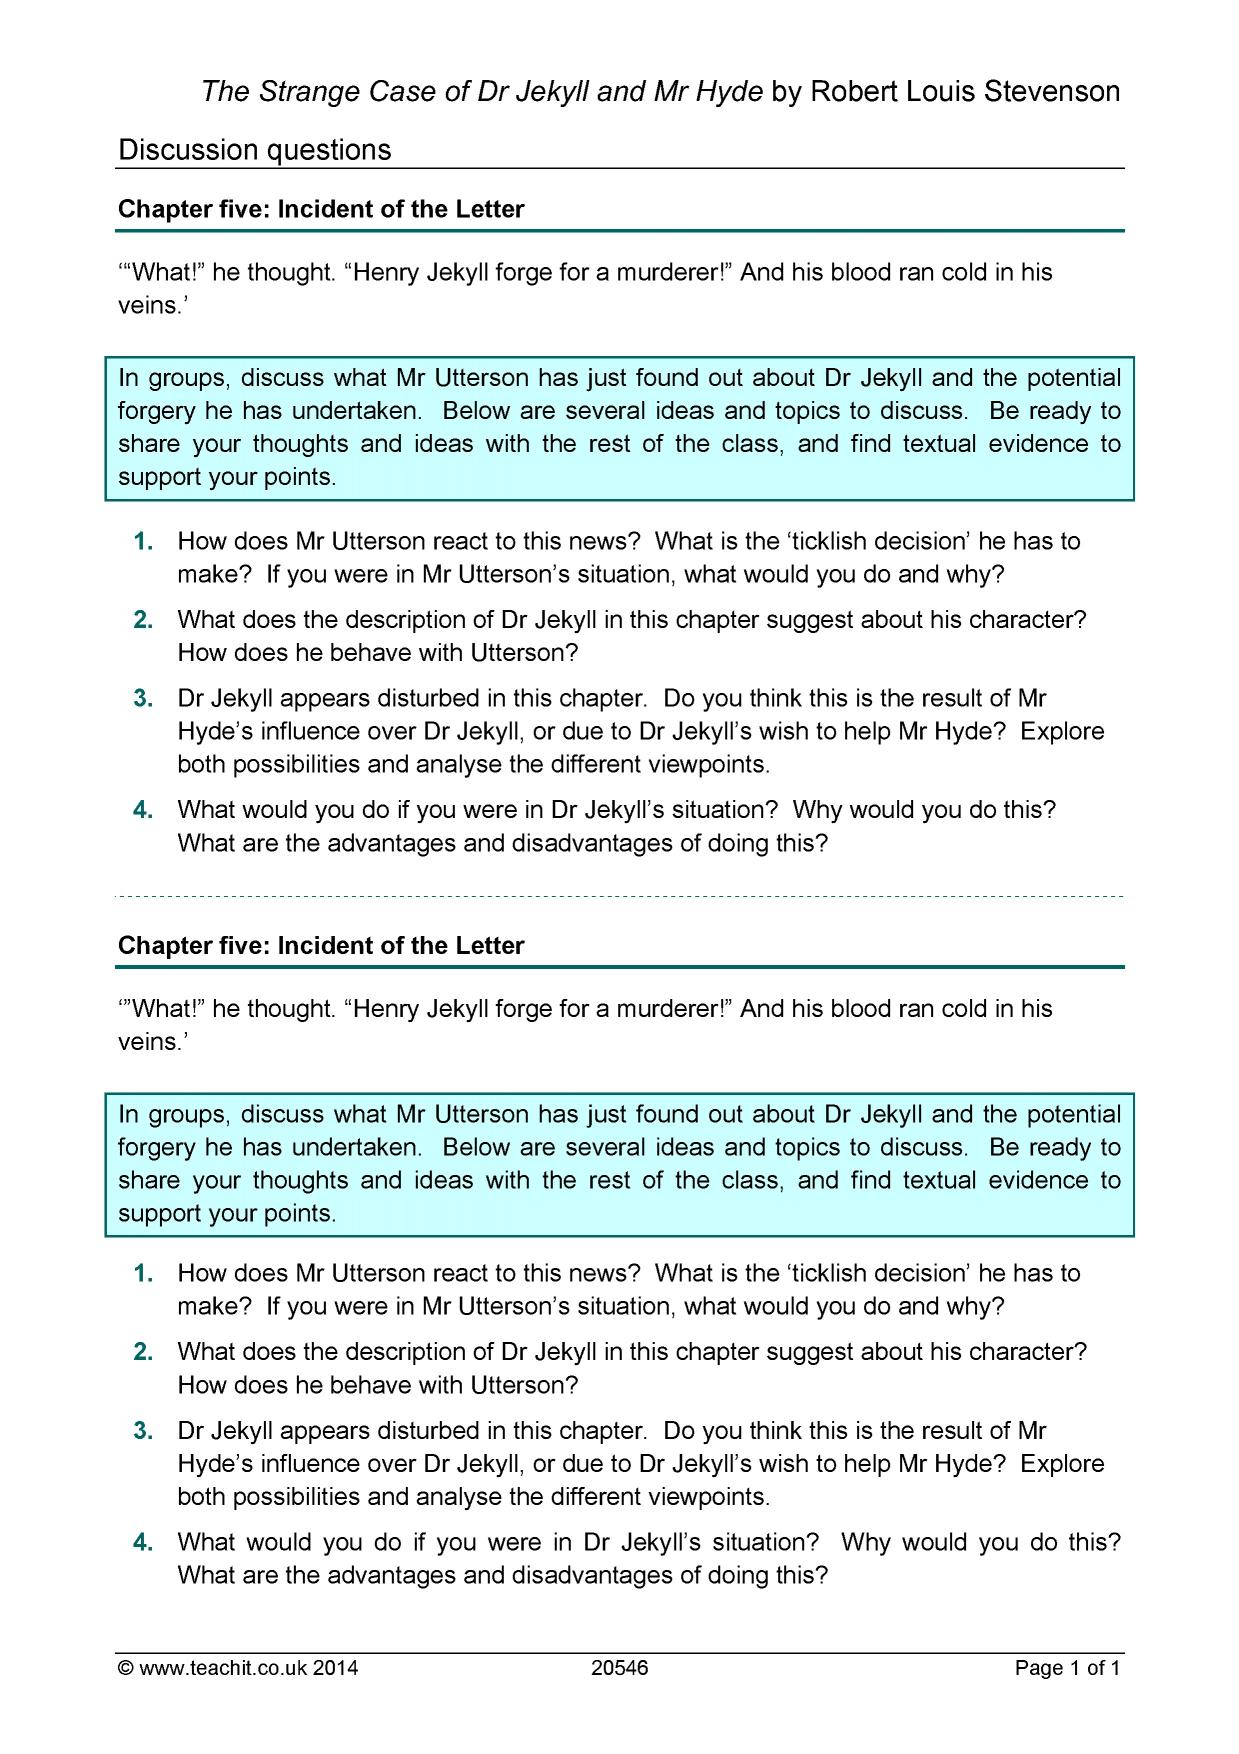 oedipus rex essay questions good research essay topics good  essay questions on dr jekyll and mr hyde dr jekyll and mr hyde essay questions gradesaver essay topics for oedipus rex